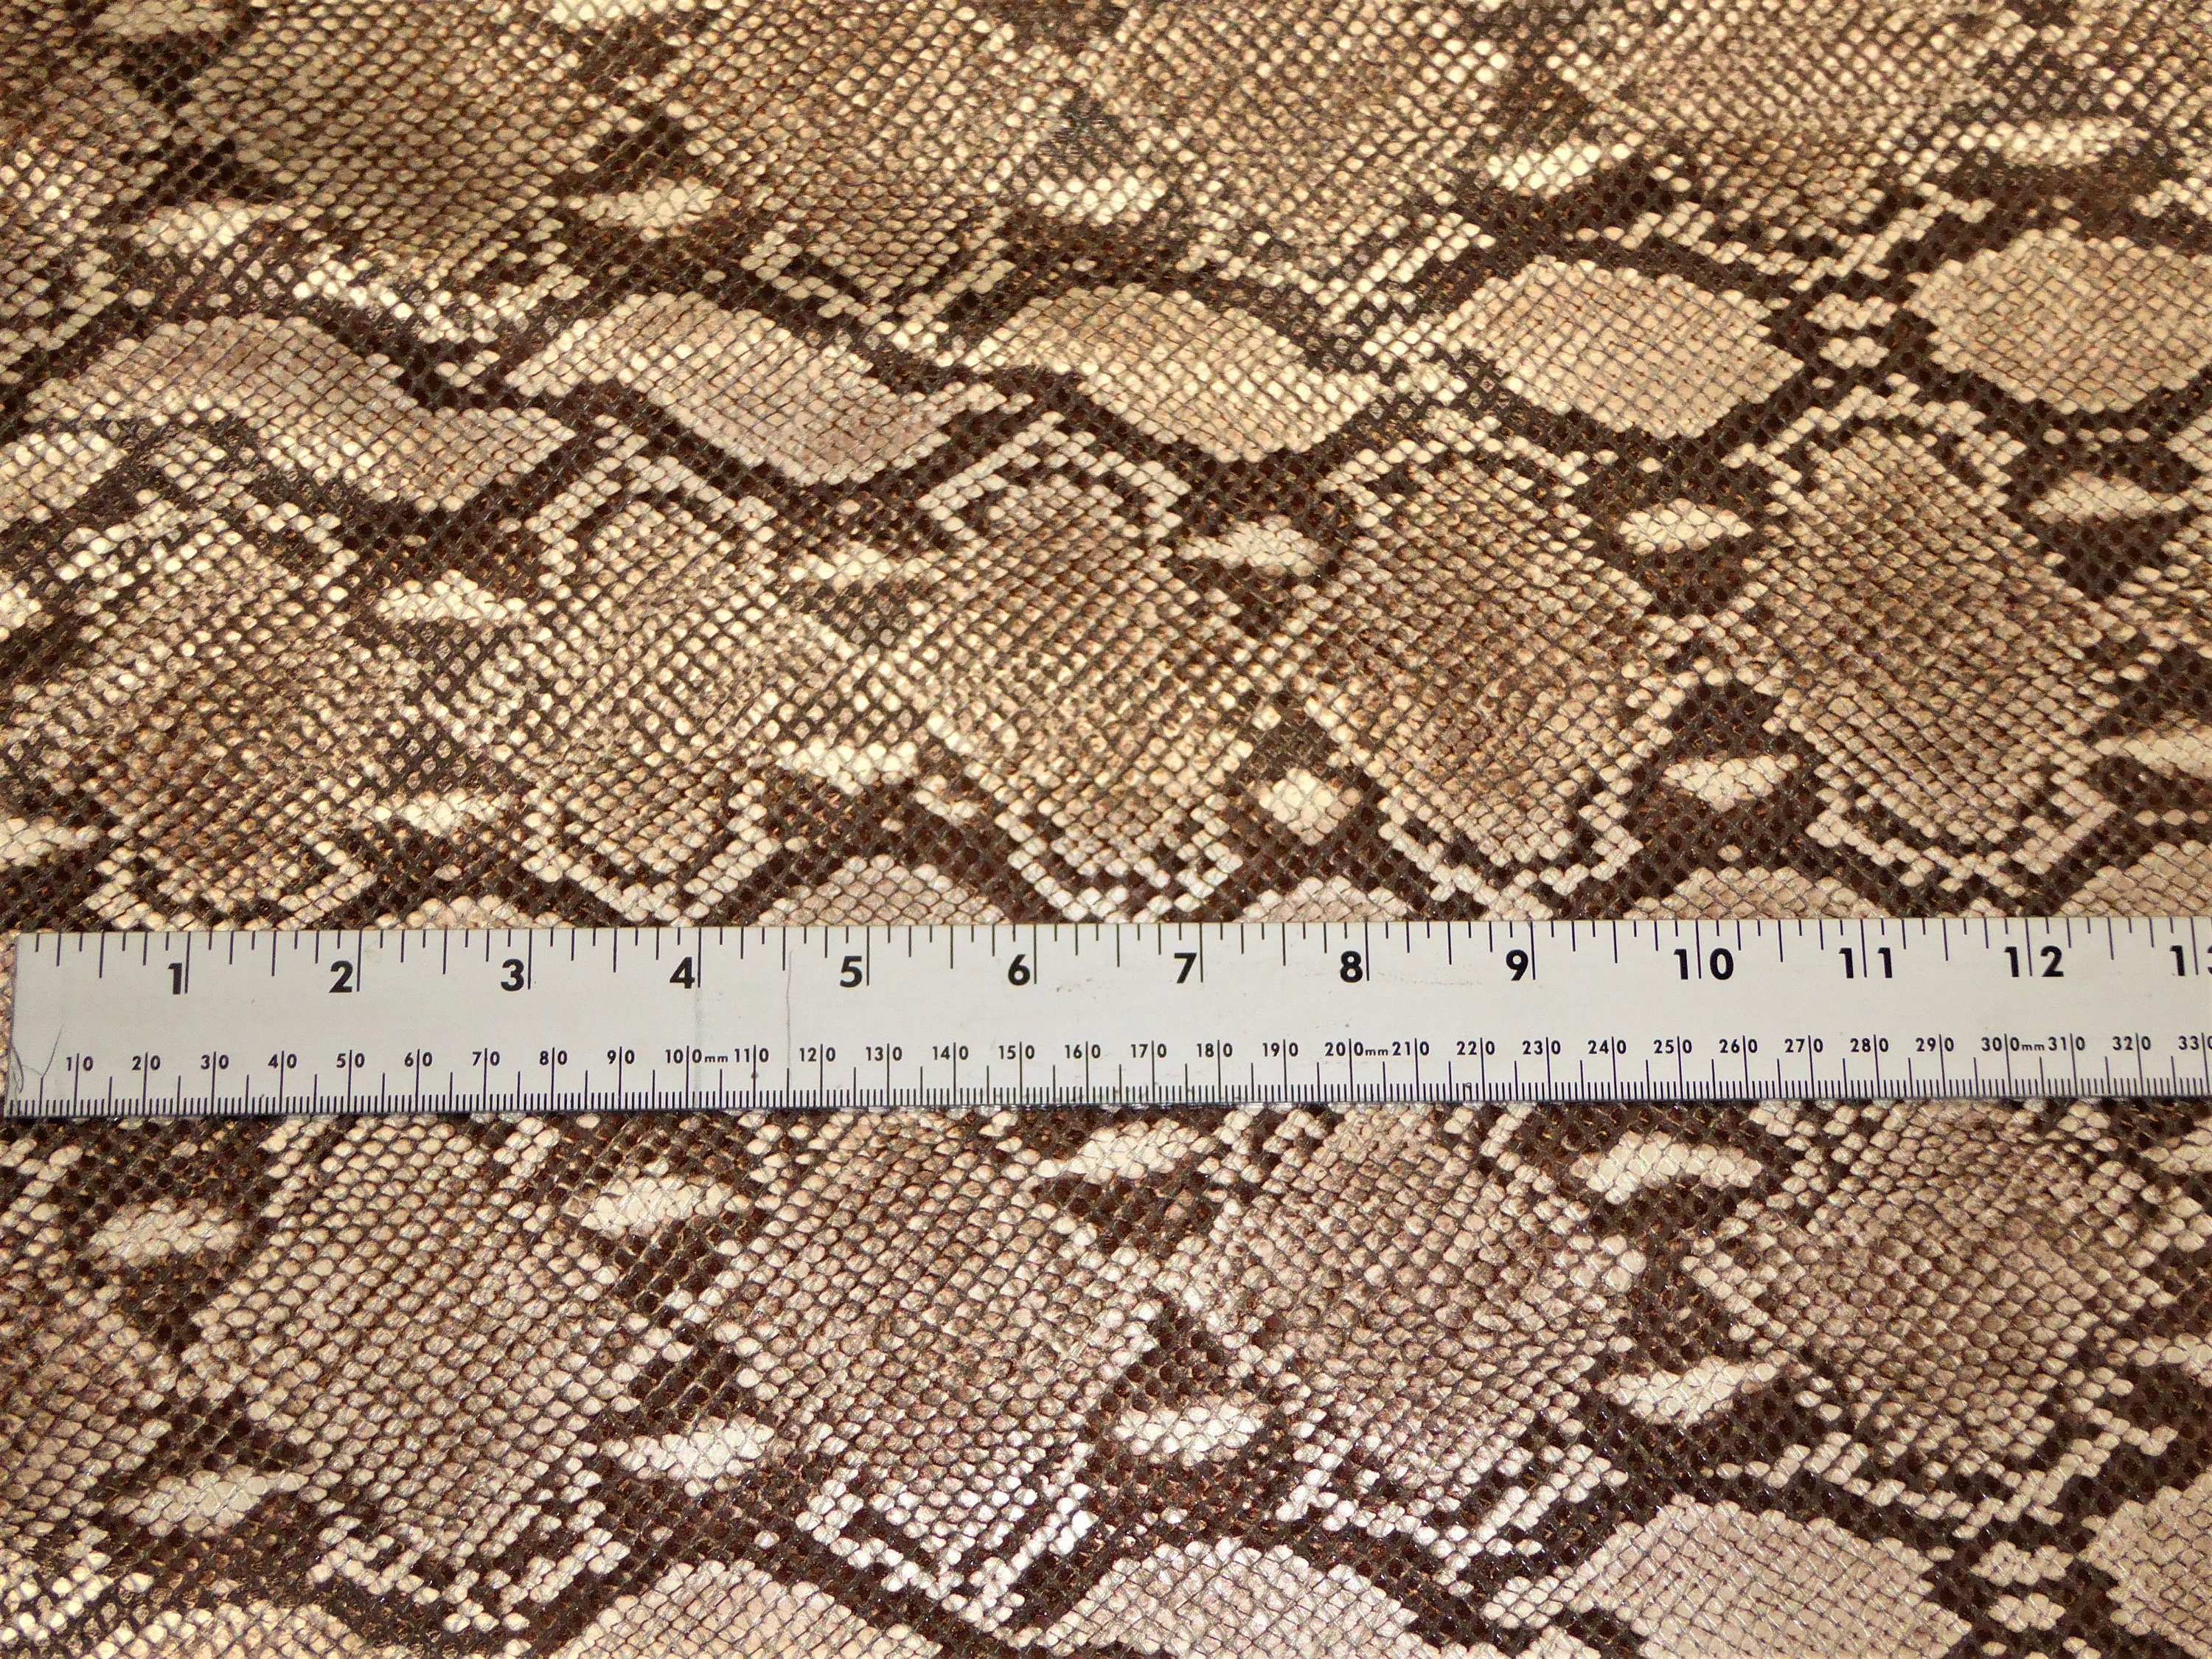 Metallic Leather 12x12  Python LASER Gold HOLOGRAPHIC on Cream Cowhide 3 oz  1.2 mm PeggySueAlso\u2122 E8110-05